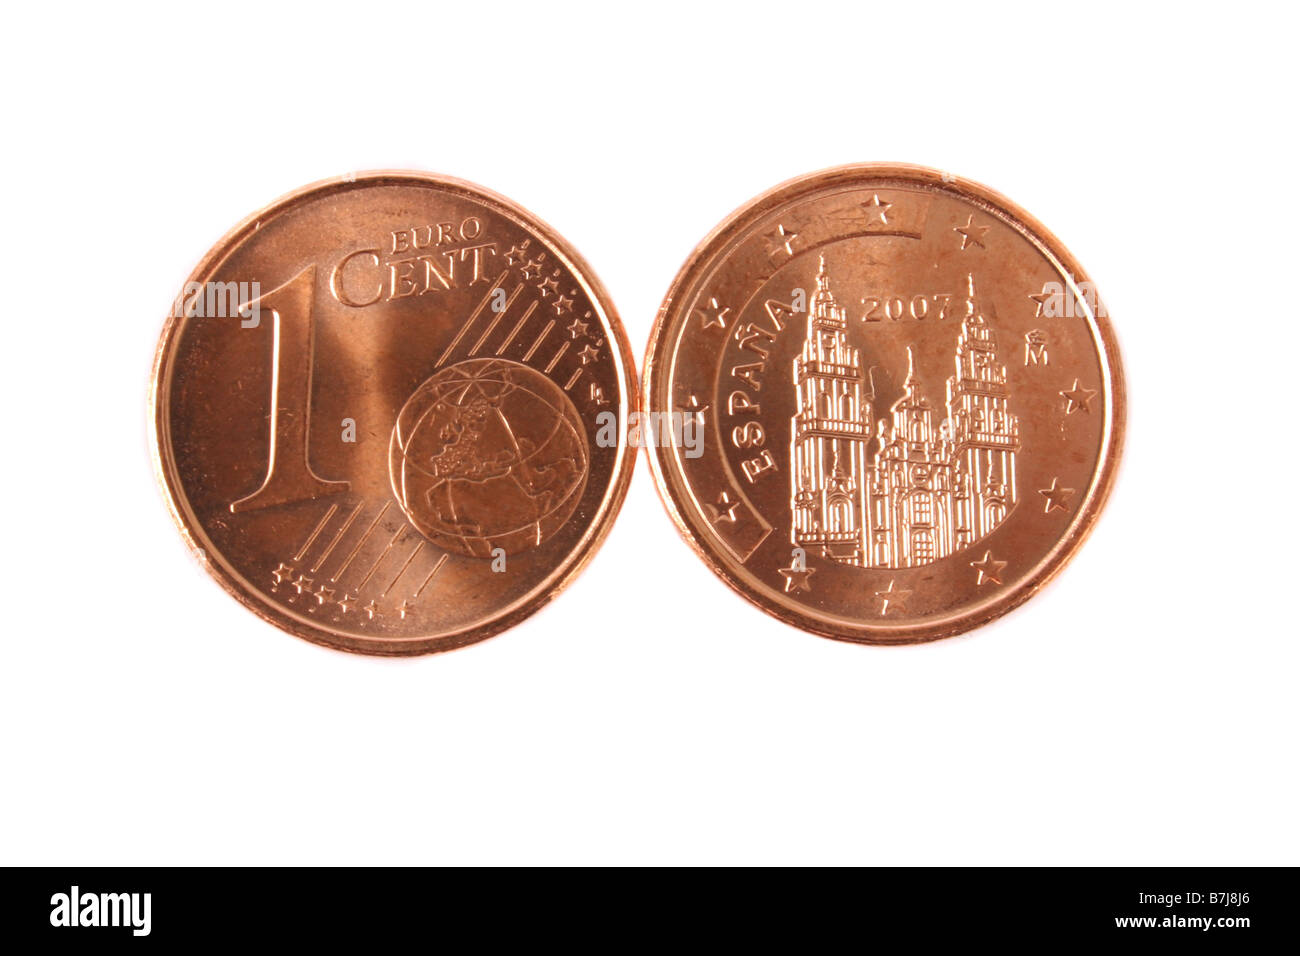 A Spanish 1 Cent Euro From 2007 Stock Image